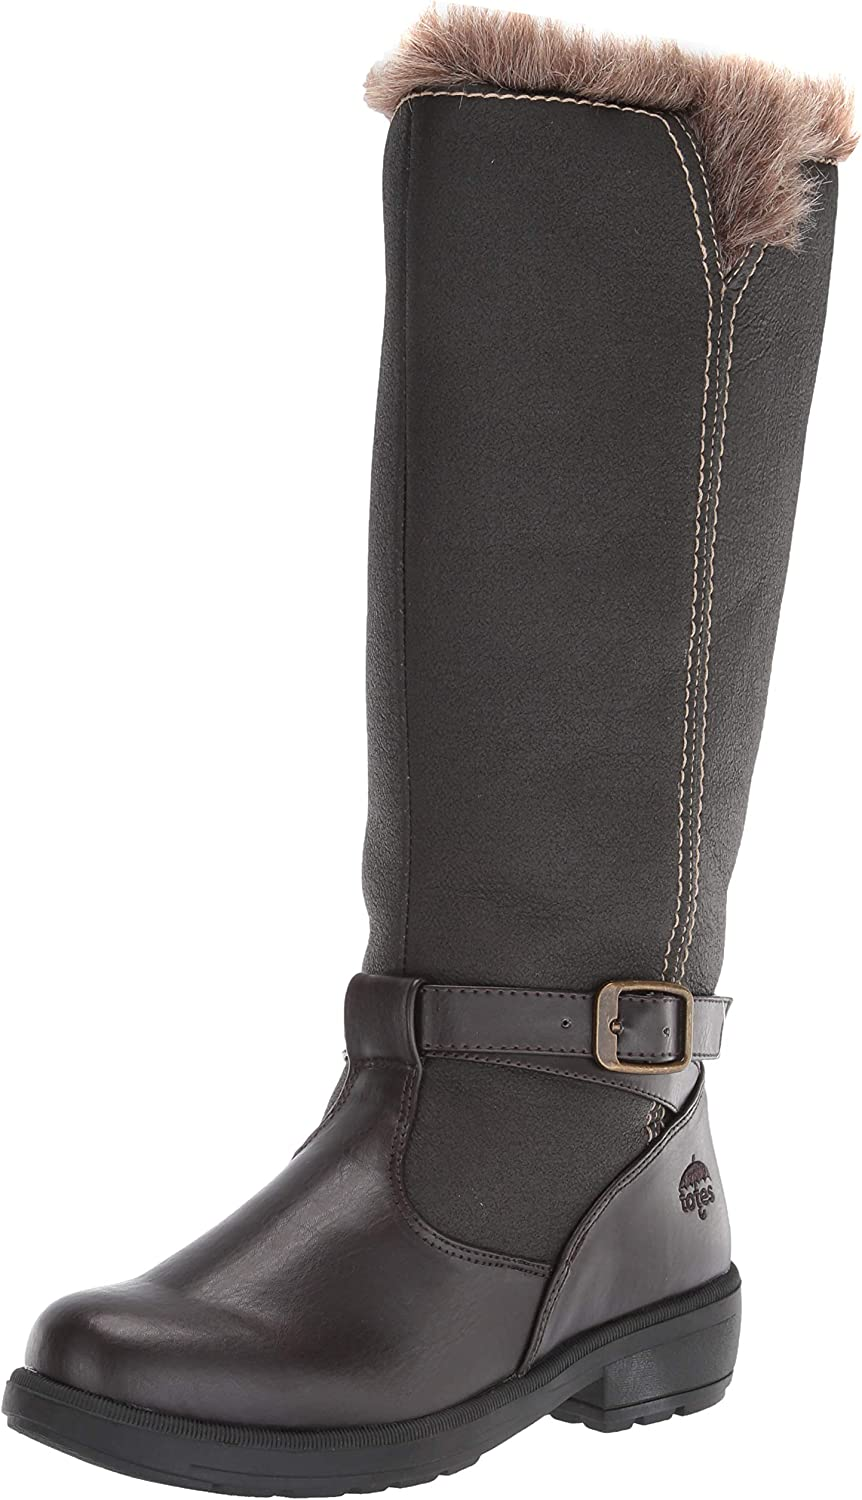 totes Women's Esther Knee High Snow Boot, Available in Medium and Wide Width and Calf